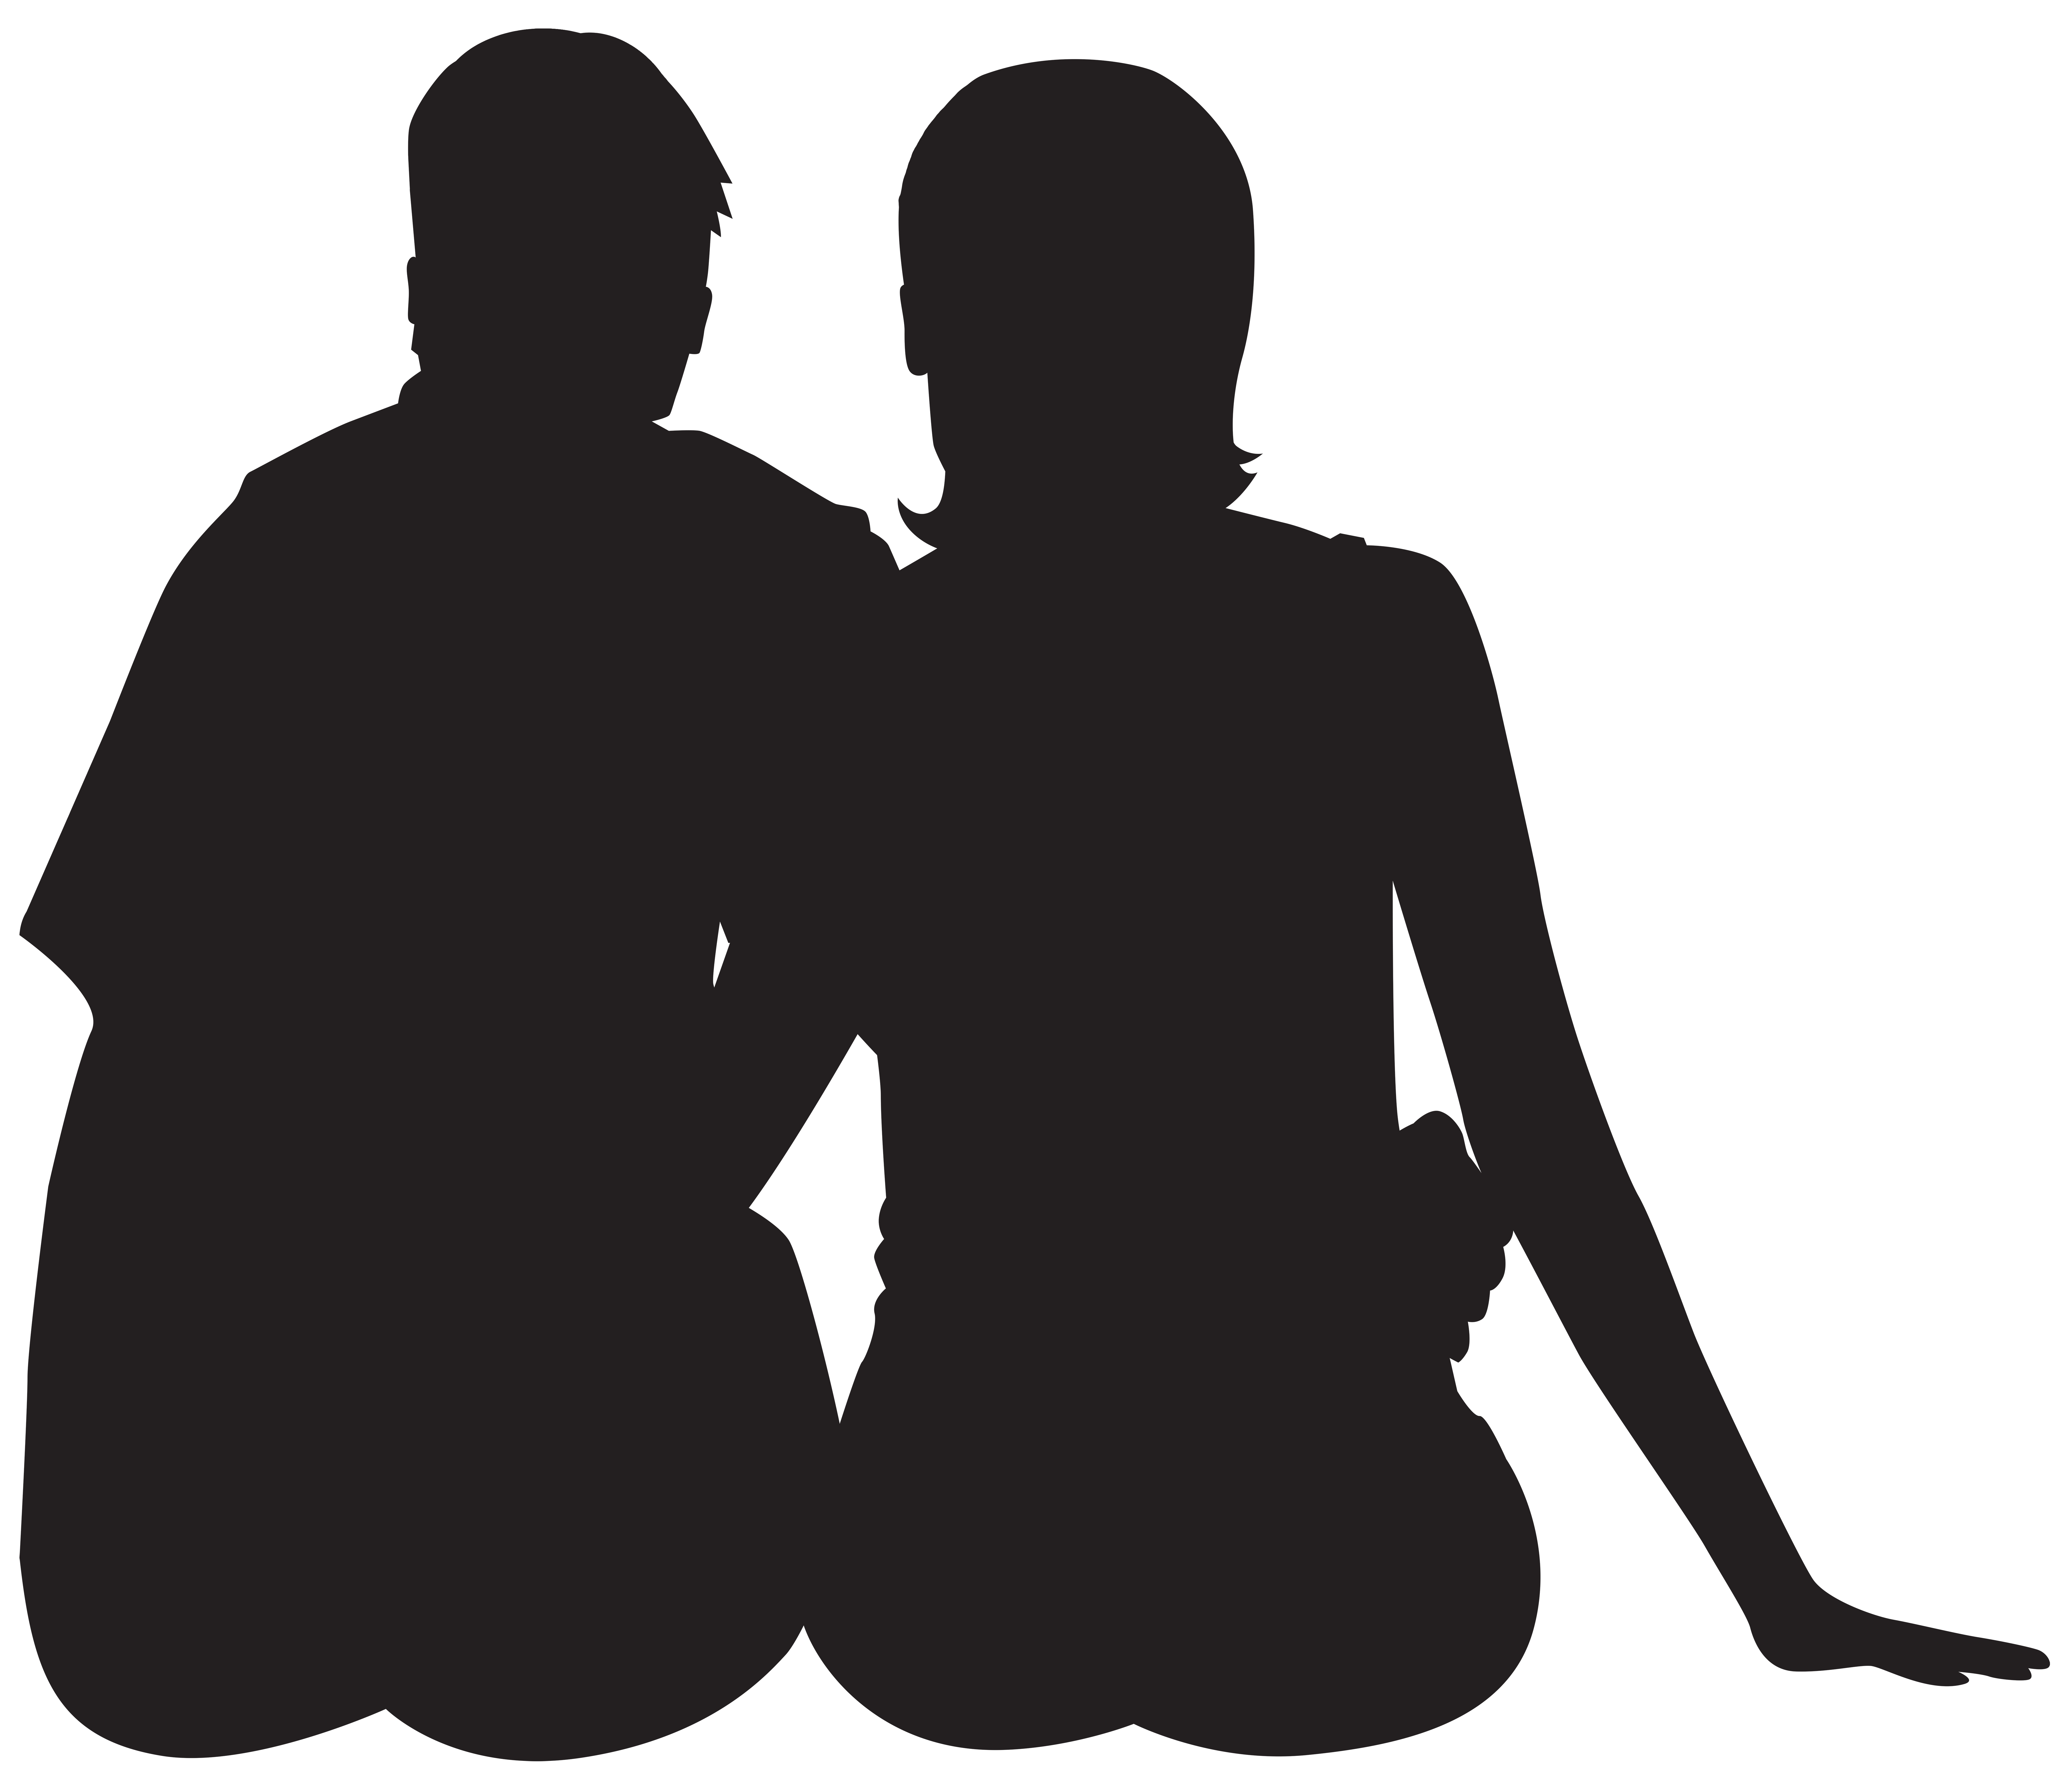 8000x6820 Sitting Couple Silhouette Png Clip Art Imageu200b Gallery